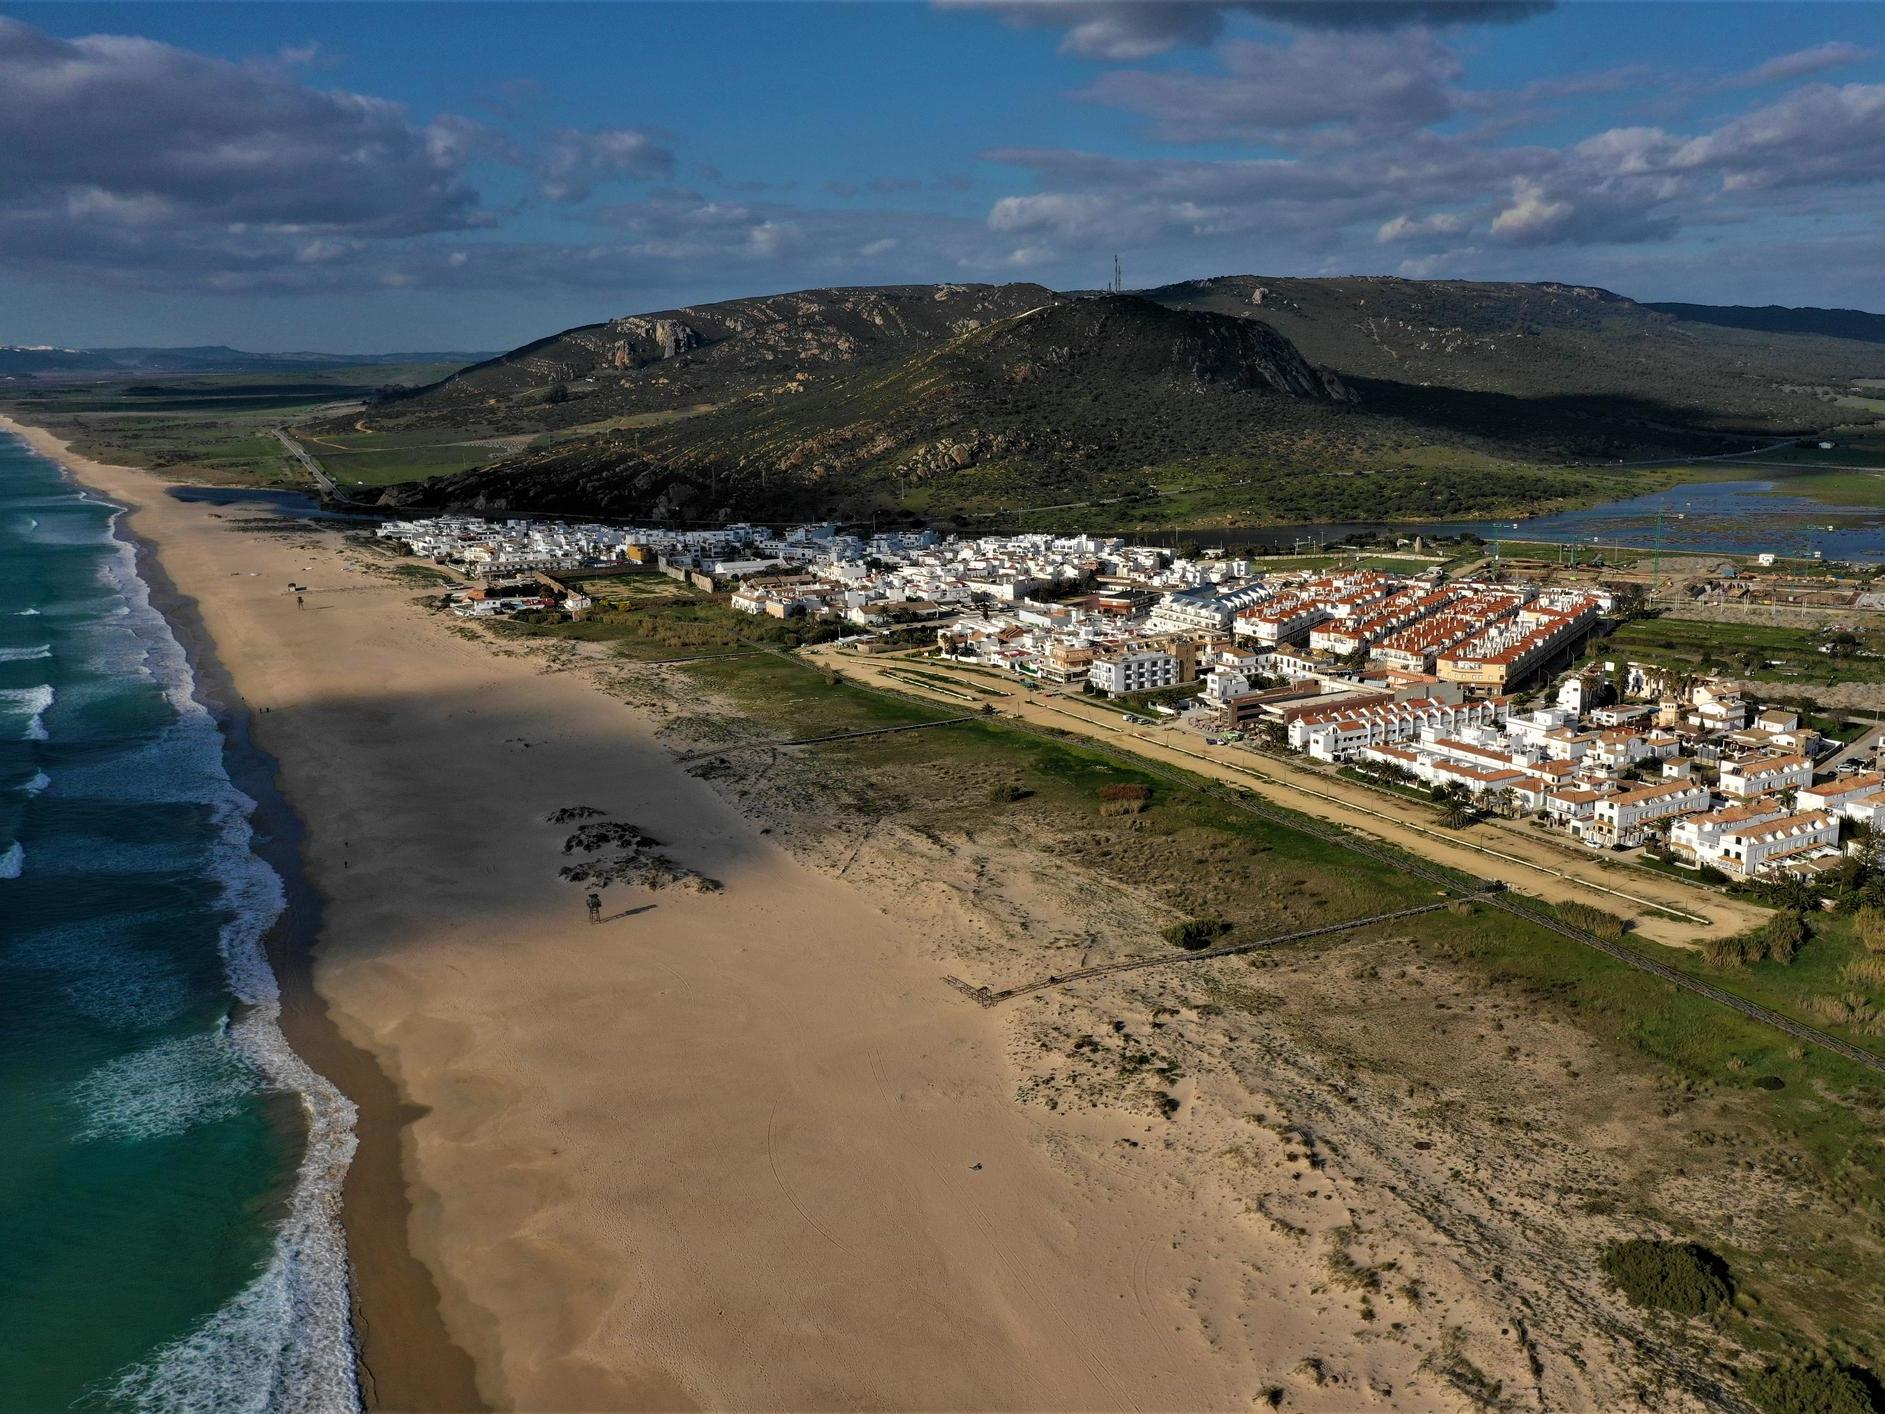 Coronavirus: Outrage after Spanish town sprays bleach on beach 'to protect children' photo